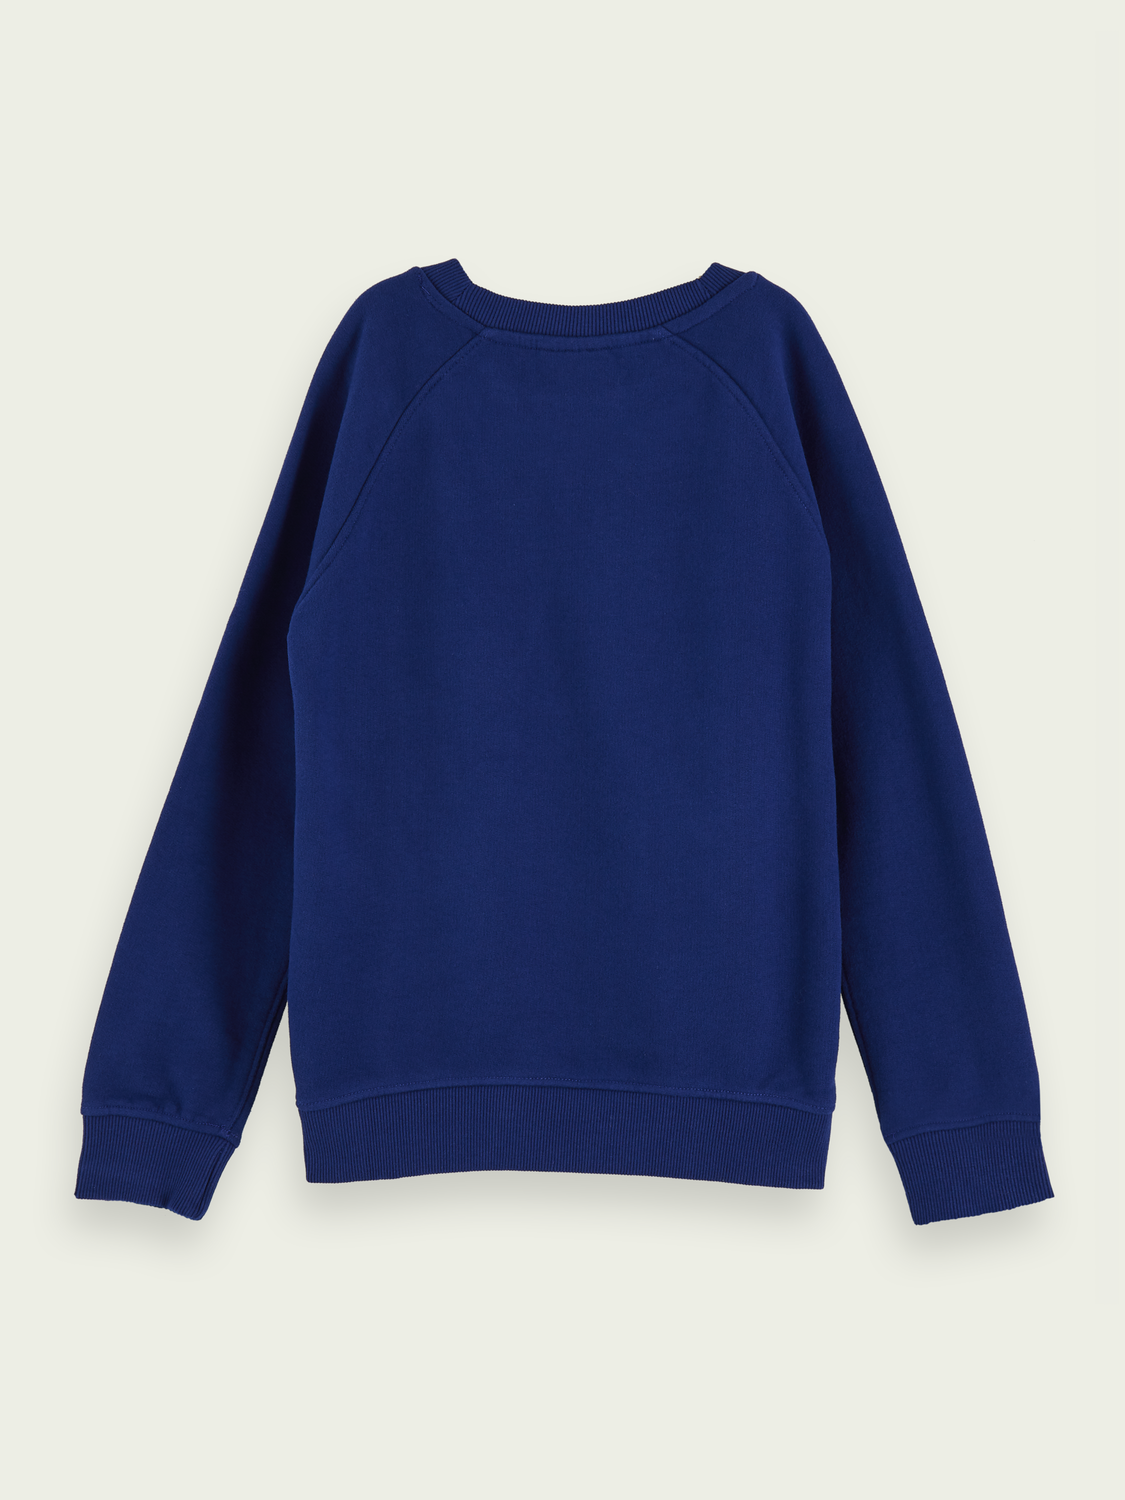 Kids 100% cotton branded crew neck sweatshirt